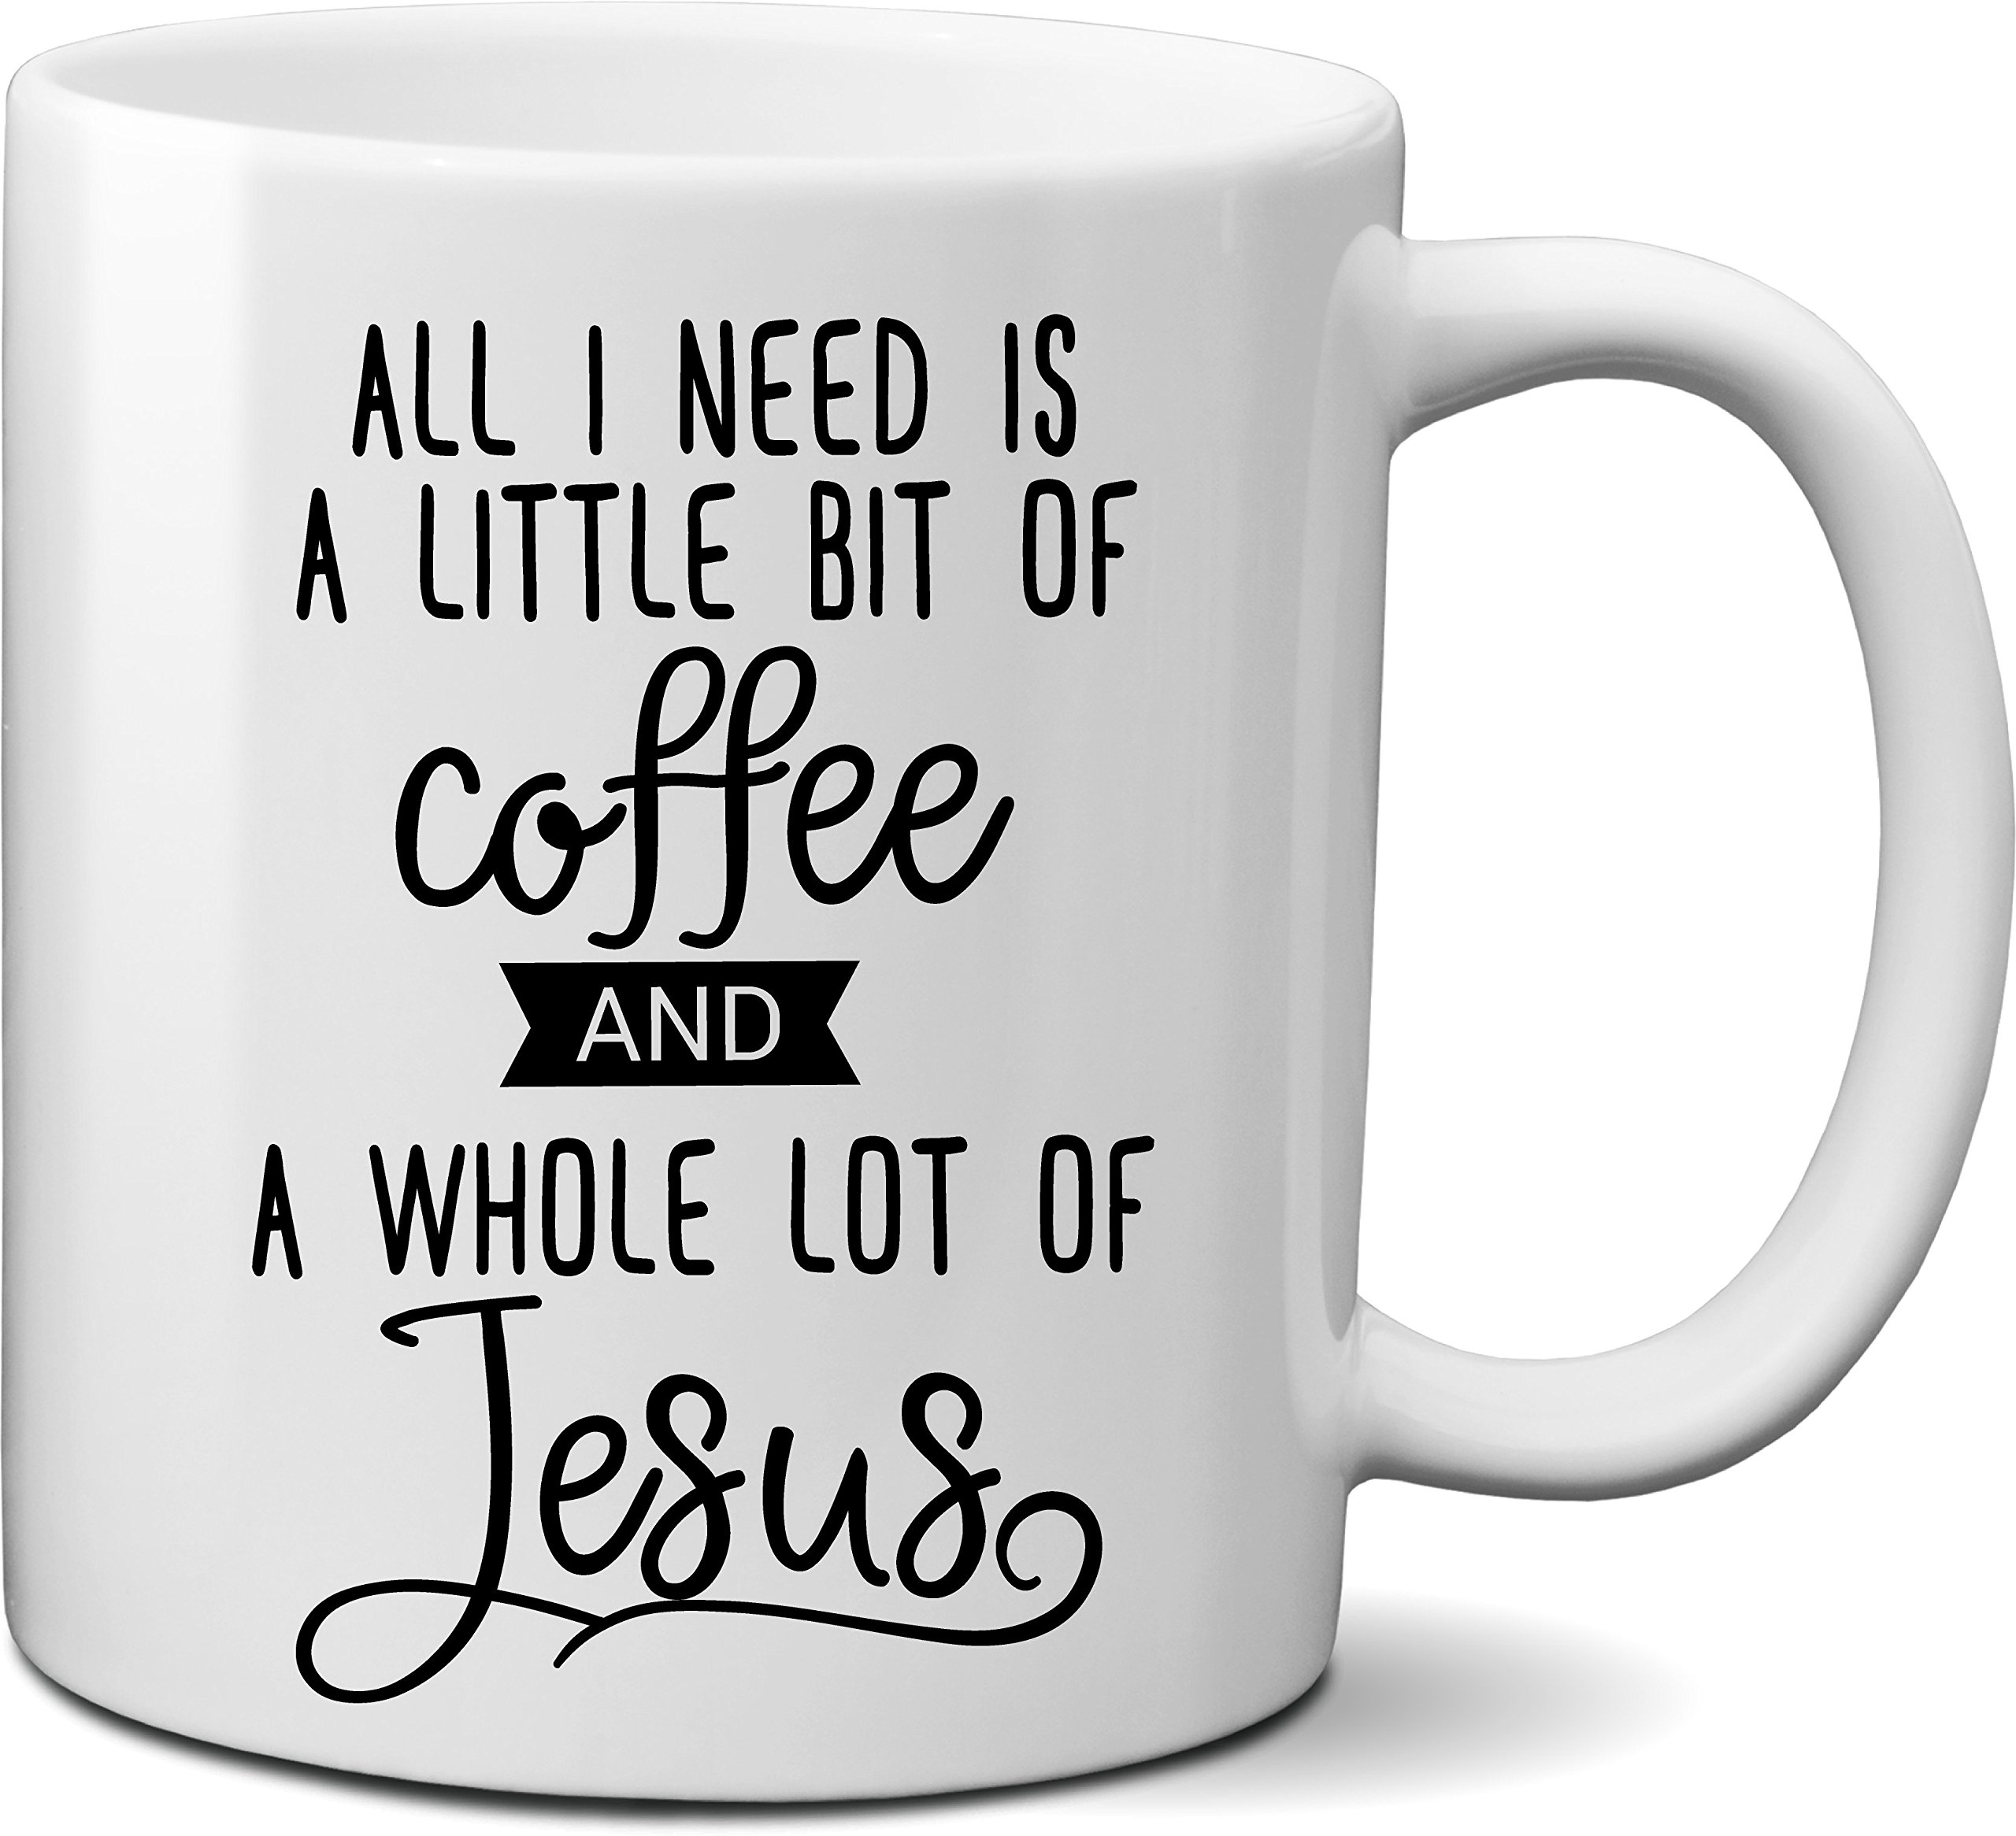 All I Need is a Little Bit of Coffee and a Whole Lot of Jesus Coffee Mug- Funny Christian Quote Mug Gift for Christmas, Easter, Birthday- Unique Christian Religious theme mug for Mom, Dad, Best friend by FanCabin